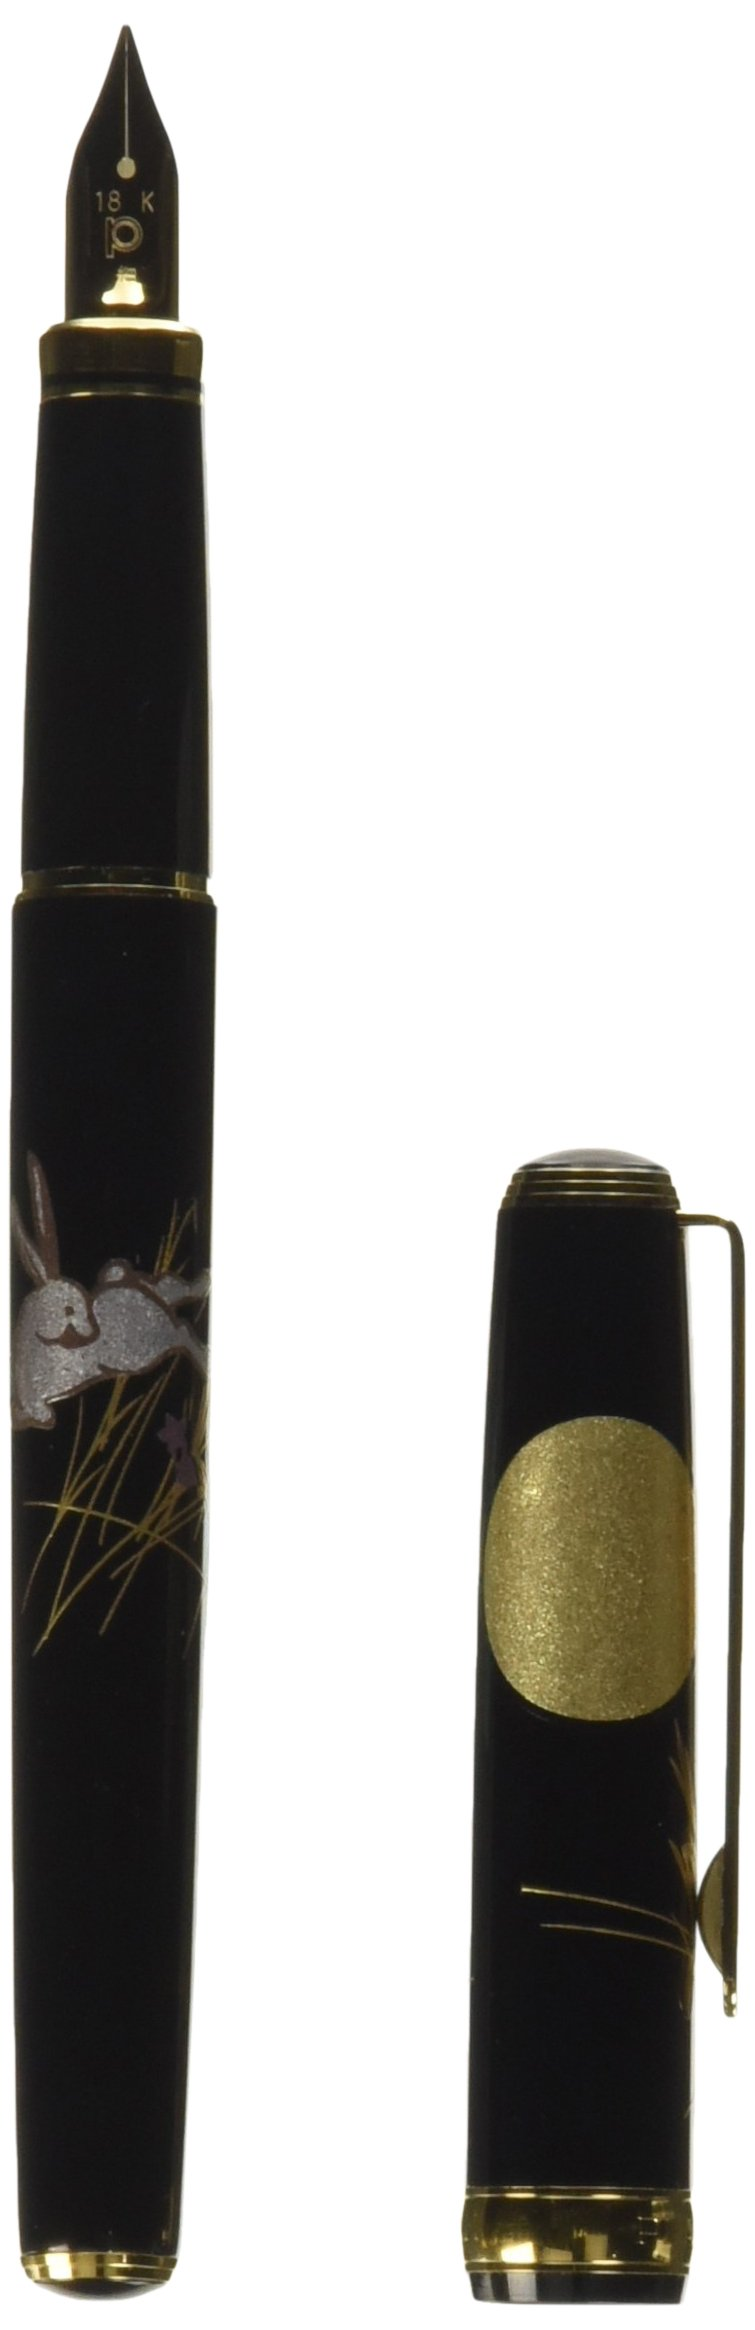 Platinum Makie Fountain Pen Kanazawa Foil Moon and Rabbit Fine Print (F) PTL-15000H#87-2 (Japan Import) by Platinum (Image #1)